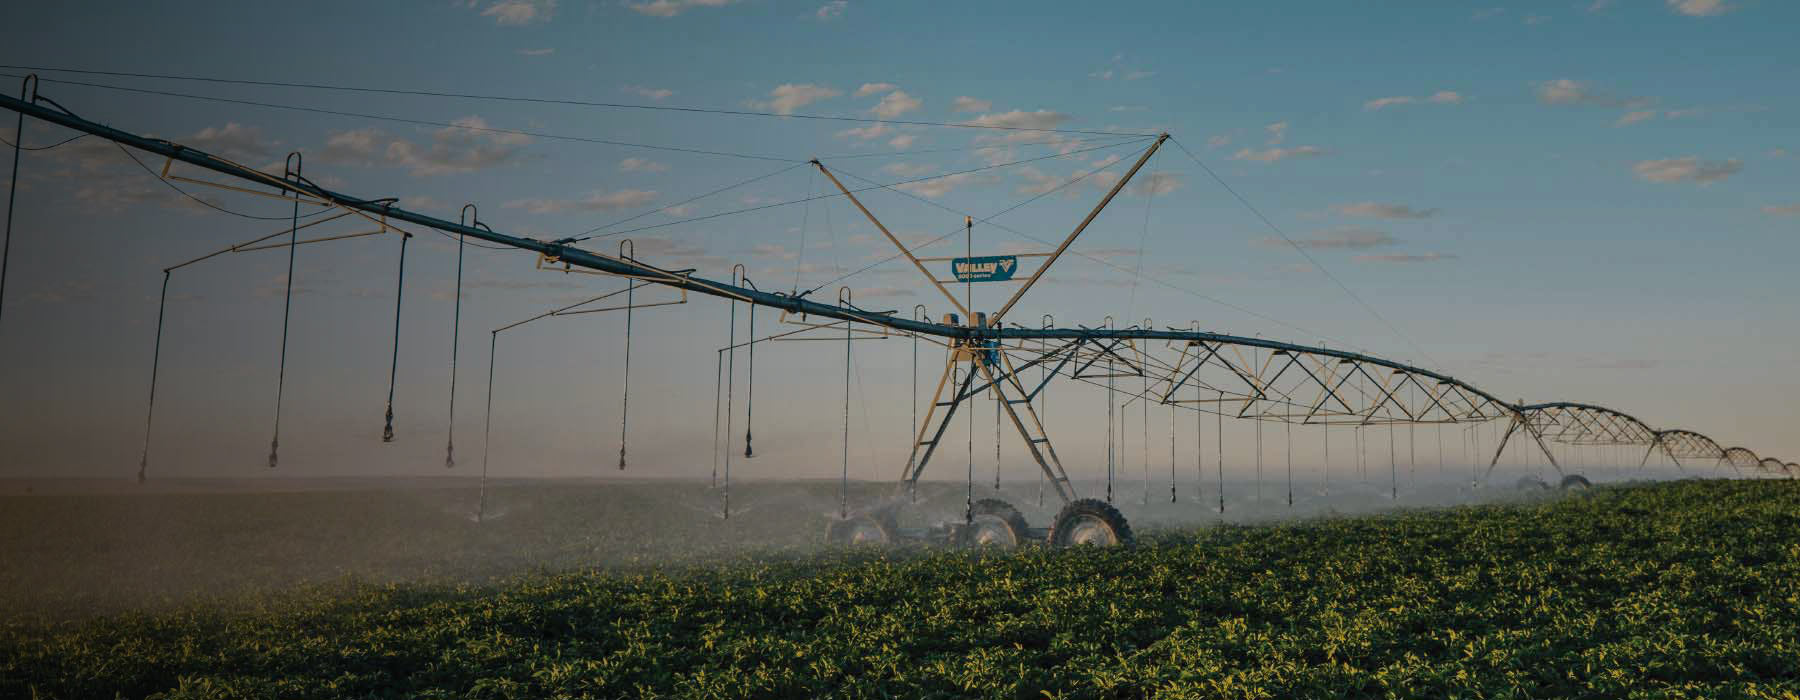 valley center pivot spraying water in field